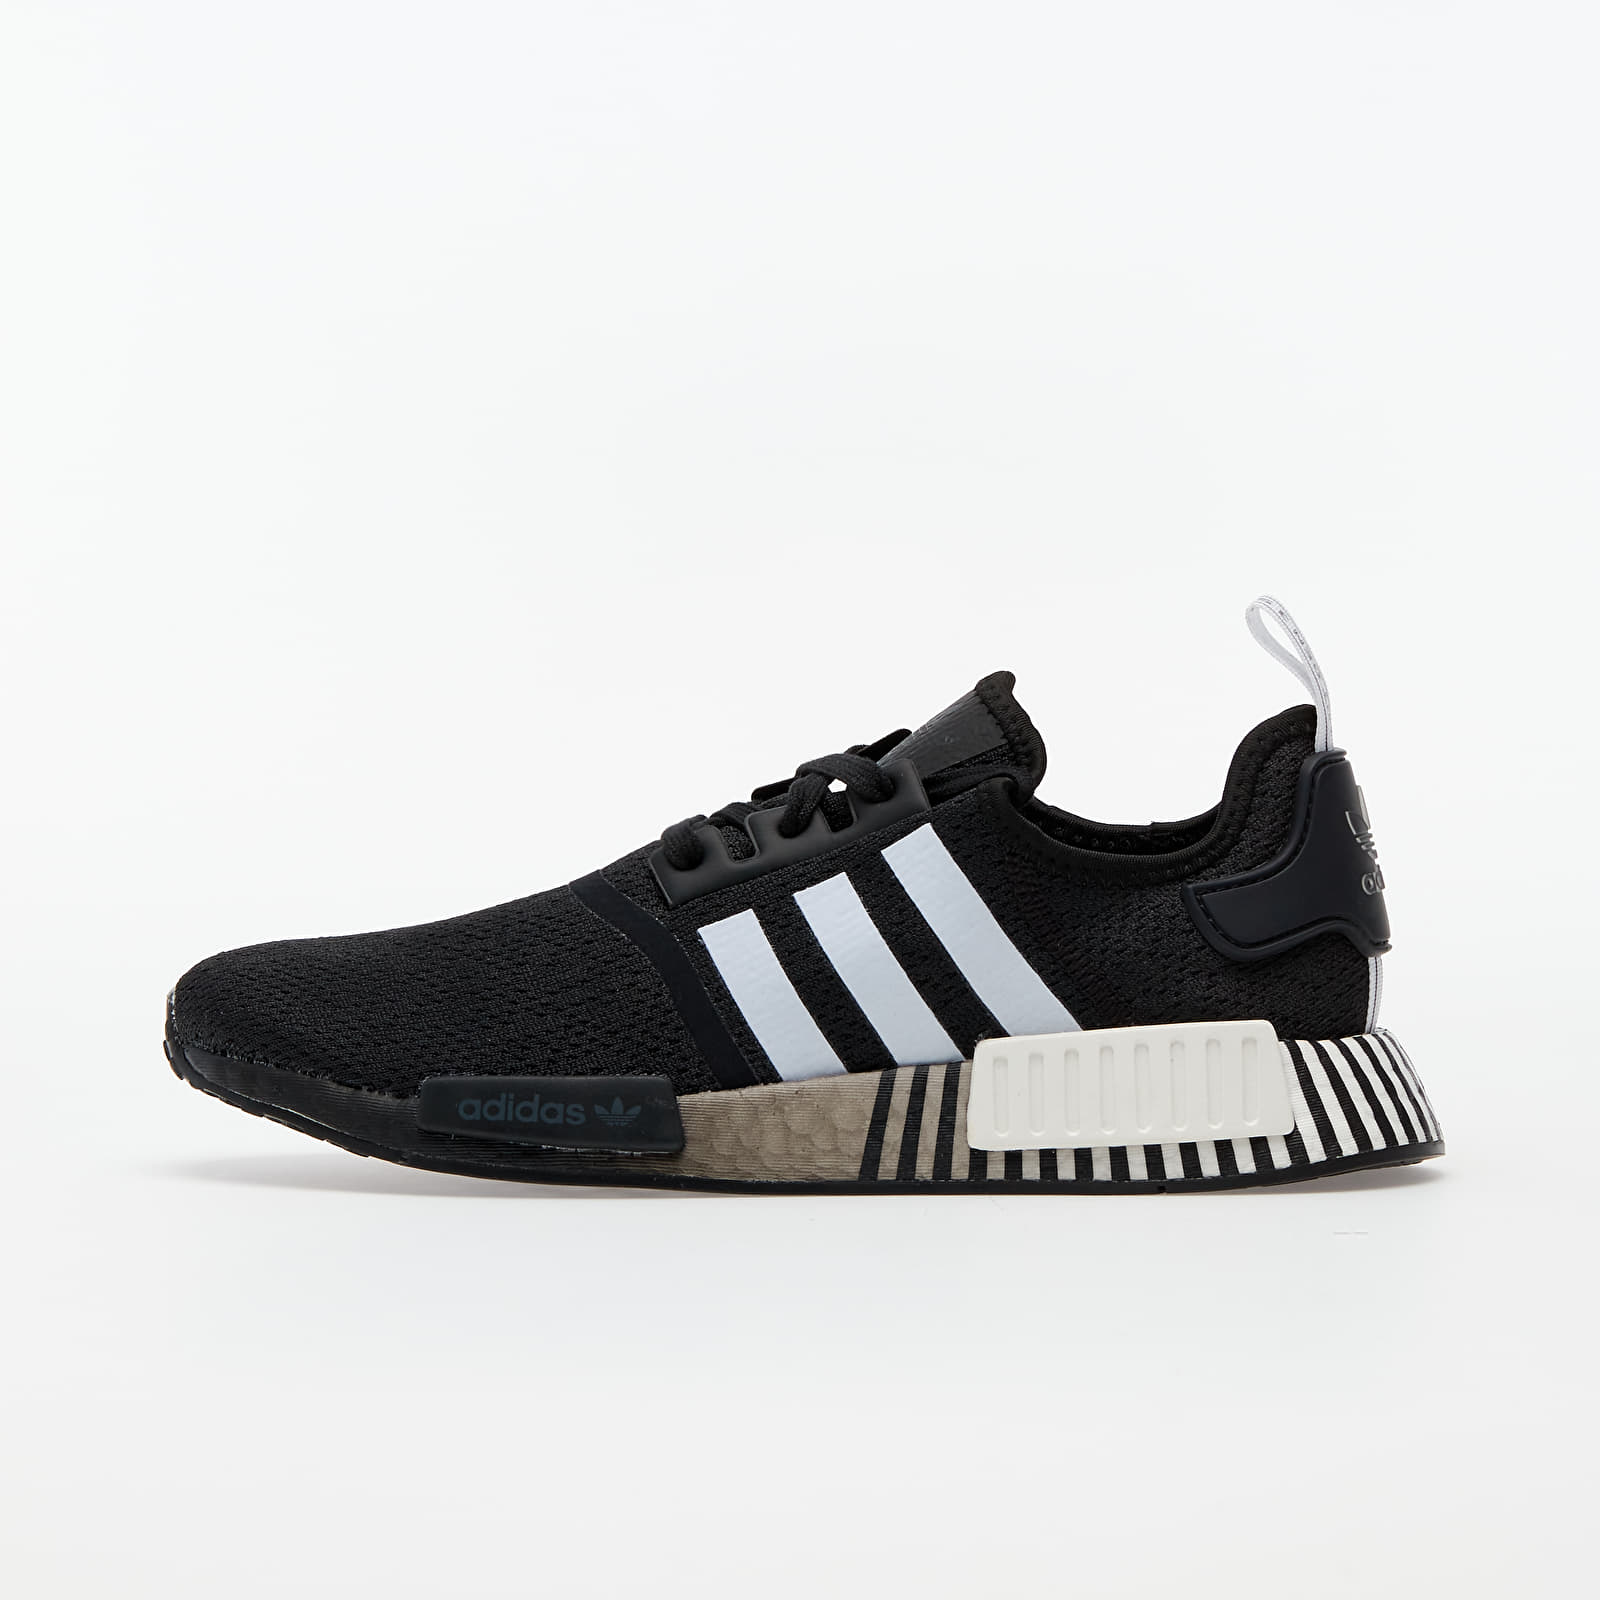 adidas NMD_R1 Core Black/ Ftw White/ Core Black EUR 44